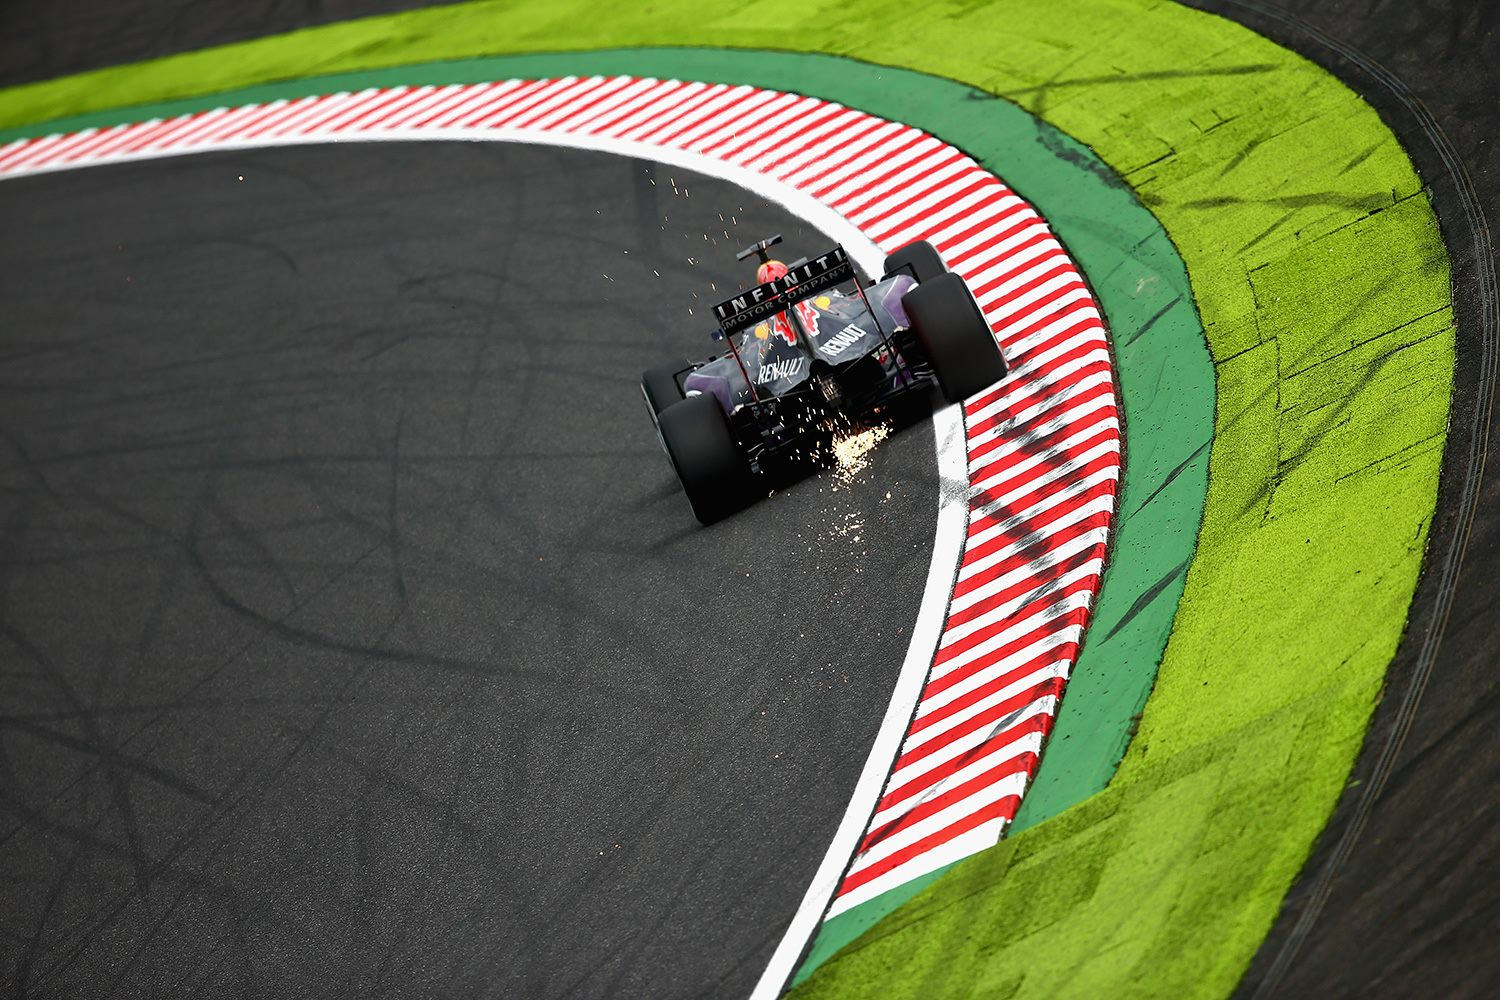 Red Bull in Suzuka. Copyright: Red Bull